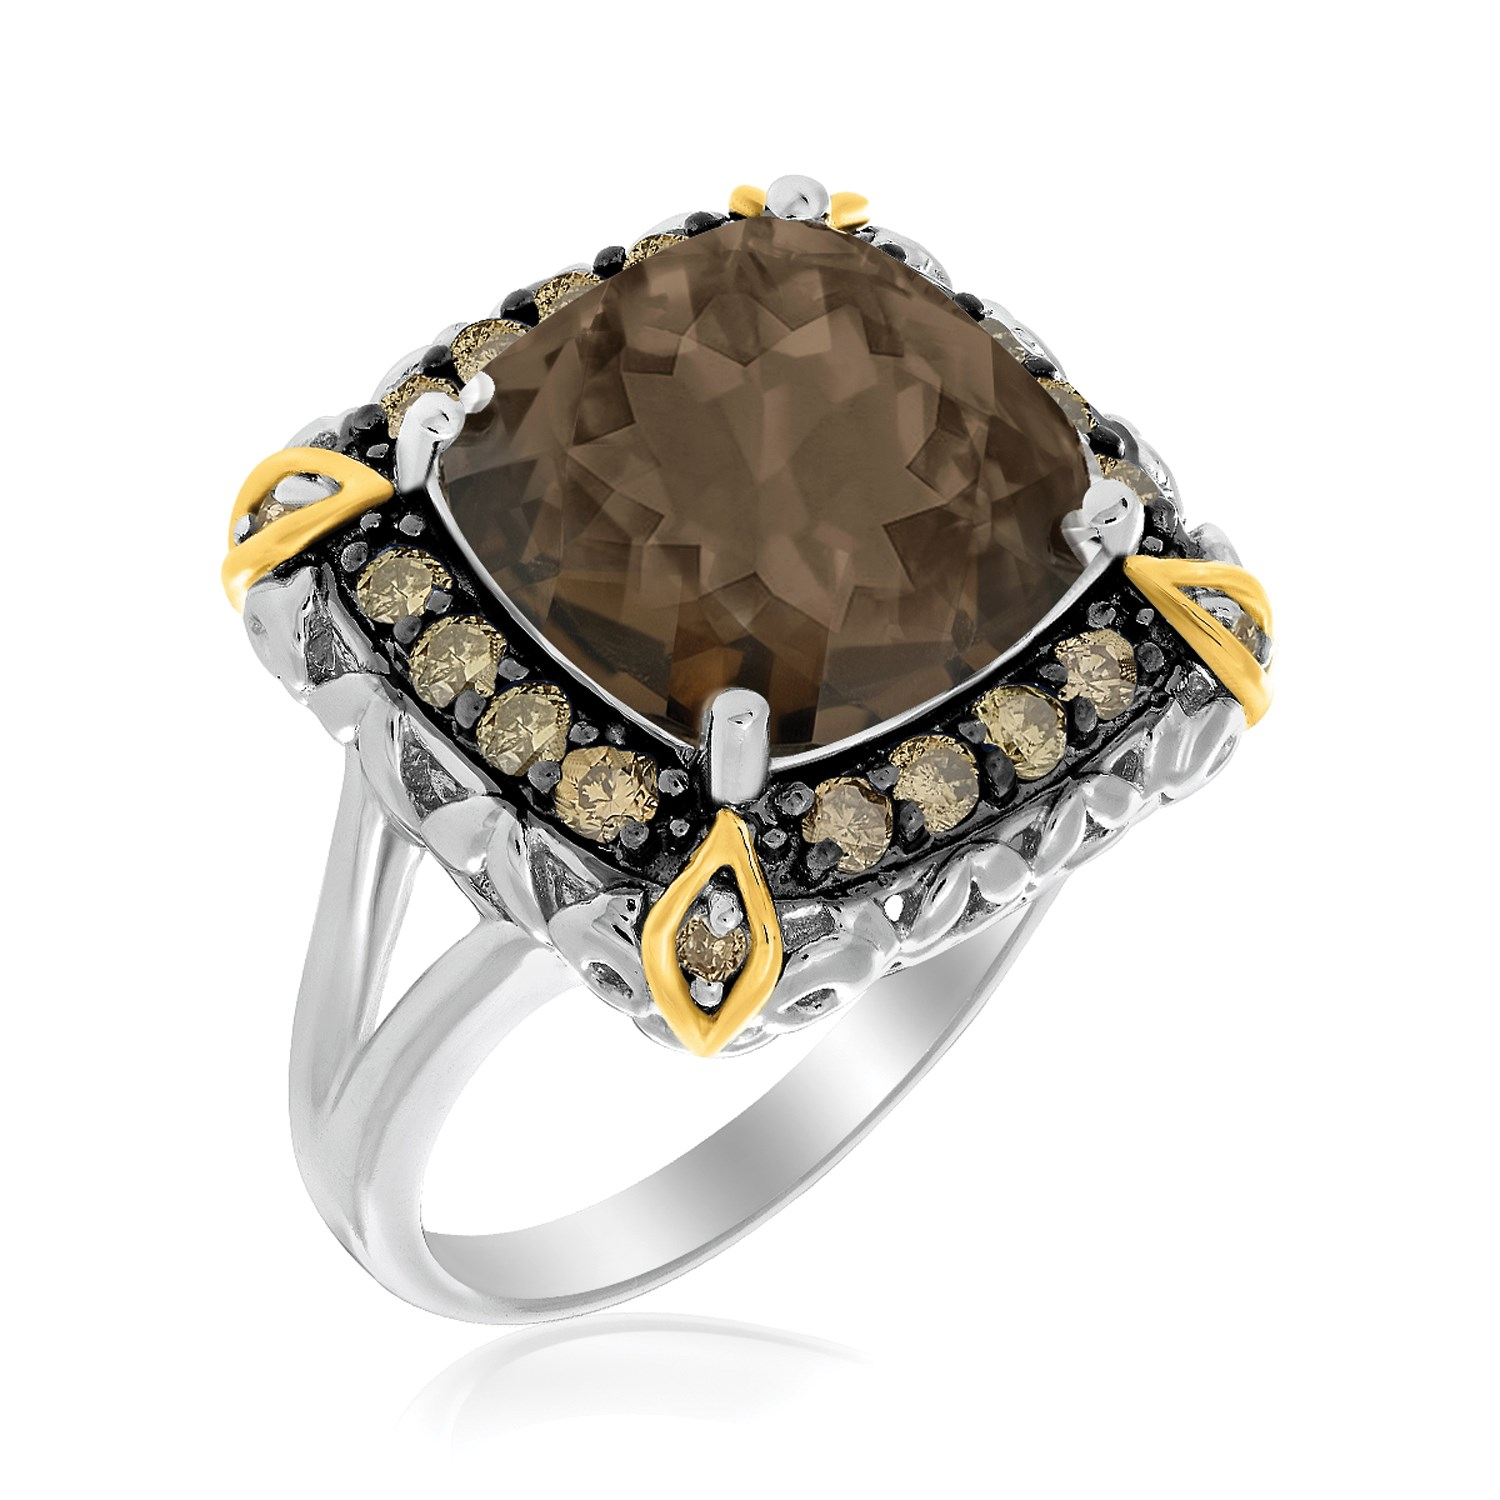 Smokey Quartz Ring With Brown Diamond Accents In 18k. Tanishq Wedding Rings. Shape Engagement Rings. Rosewood Wedding Rings. Onion Wedding Rings. Astrology Engagement Rings. Varsity Rings. Santa Rings. Class Wedding Rings